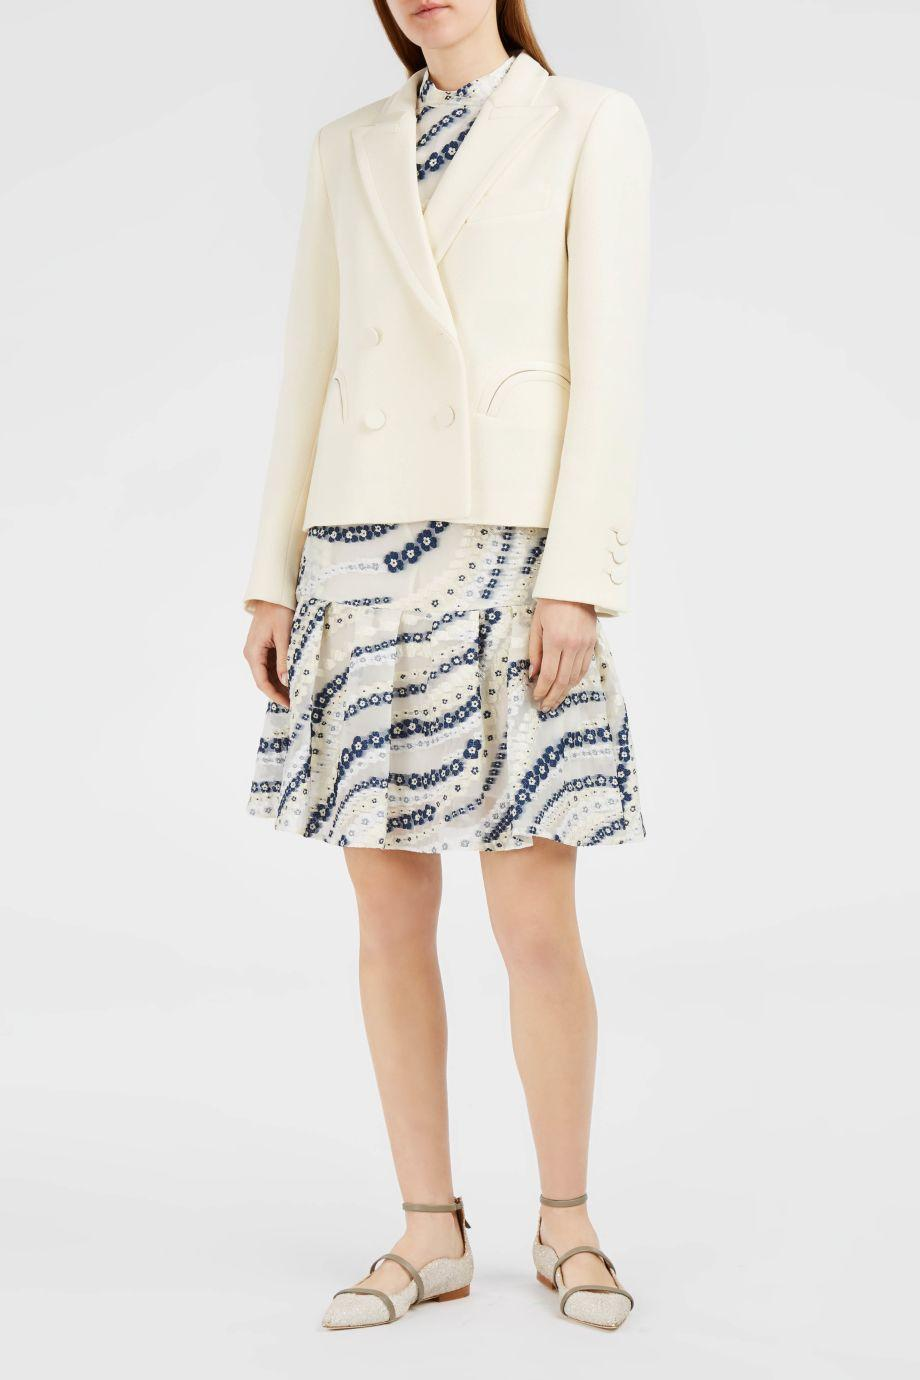 Blazé Milano Spencer Resolute Cream Cropped Blazer